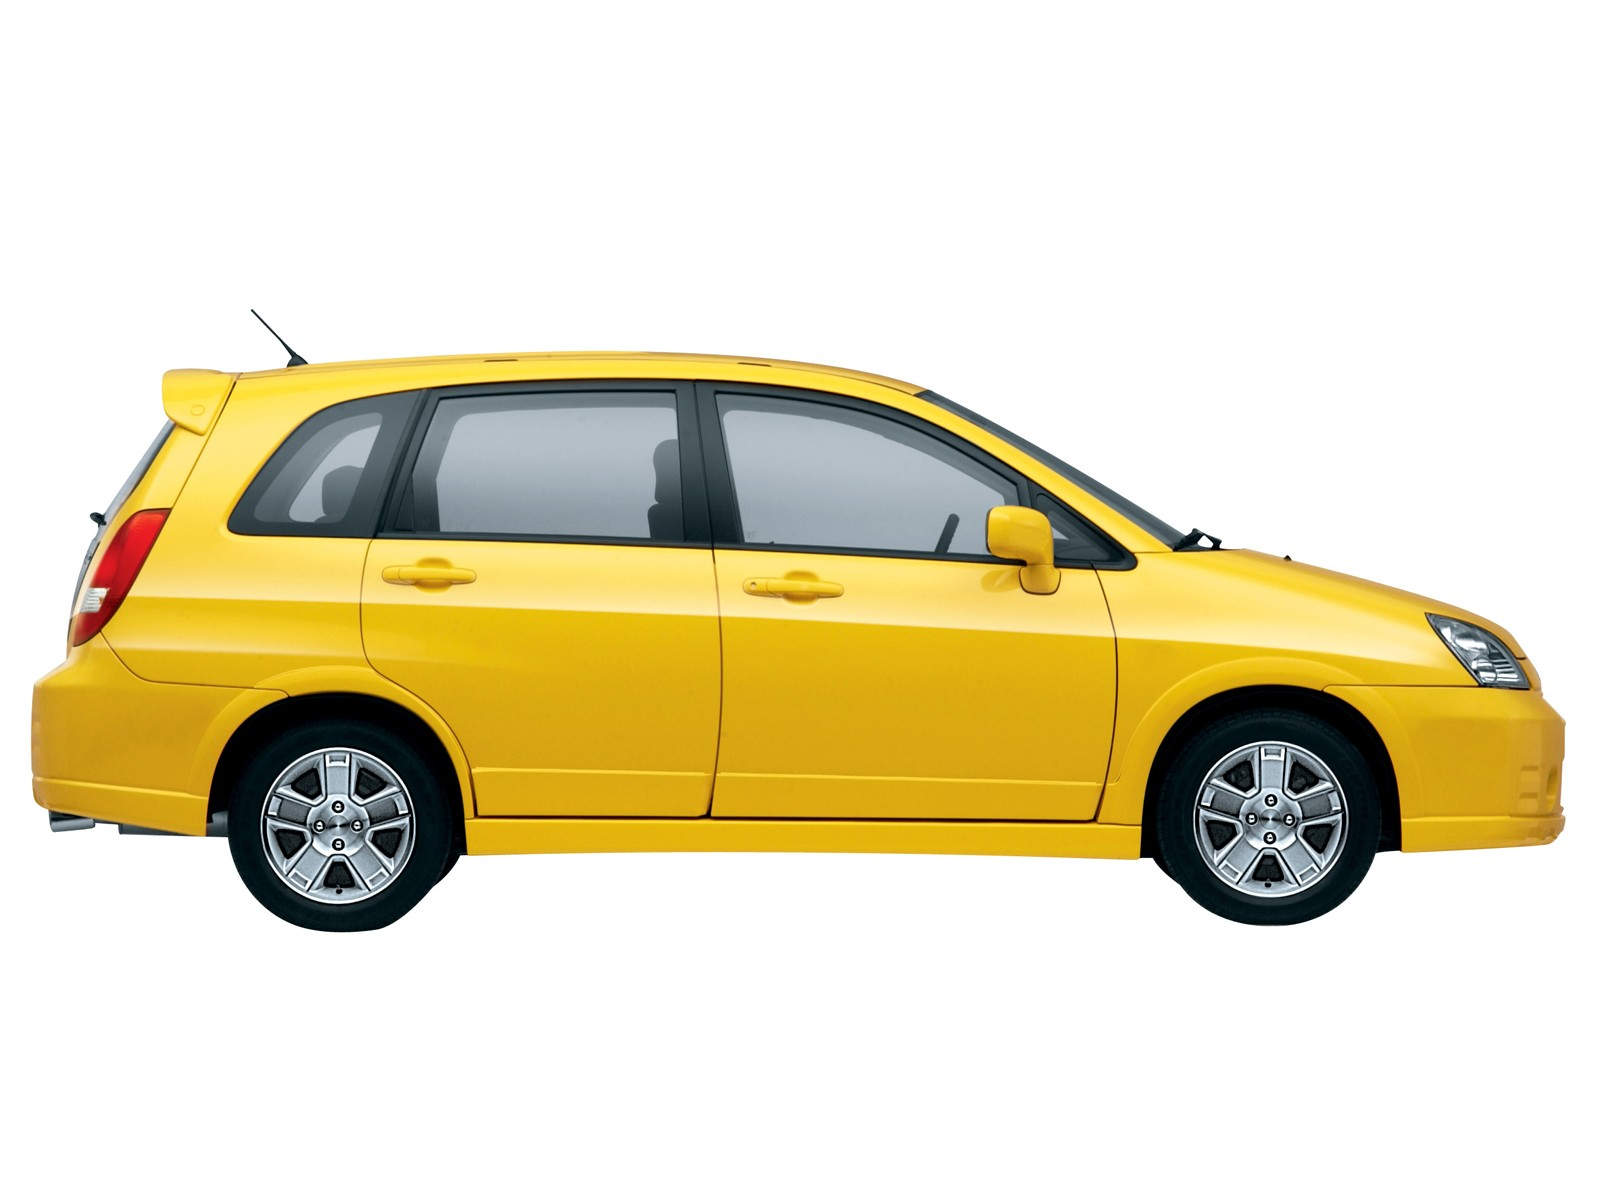 Suzuki Aerio Liana Hatchback Specs Photos 2001 2002 2003. Suzuki Aerio Liana Hatchback 2001 2007. Suzuki. Suzuki Aerio 2003 Transmition Diagram At Scoala.co